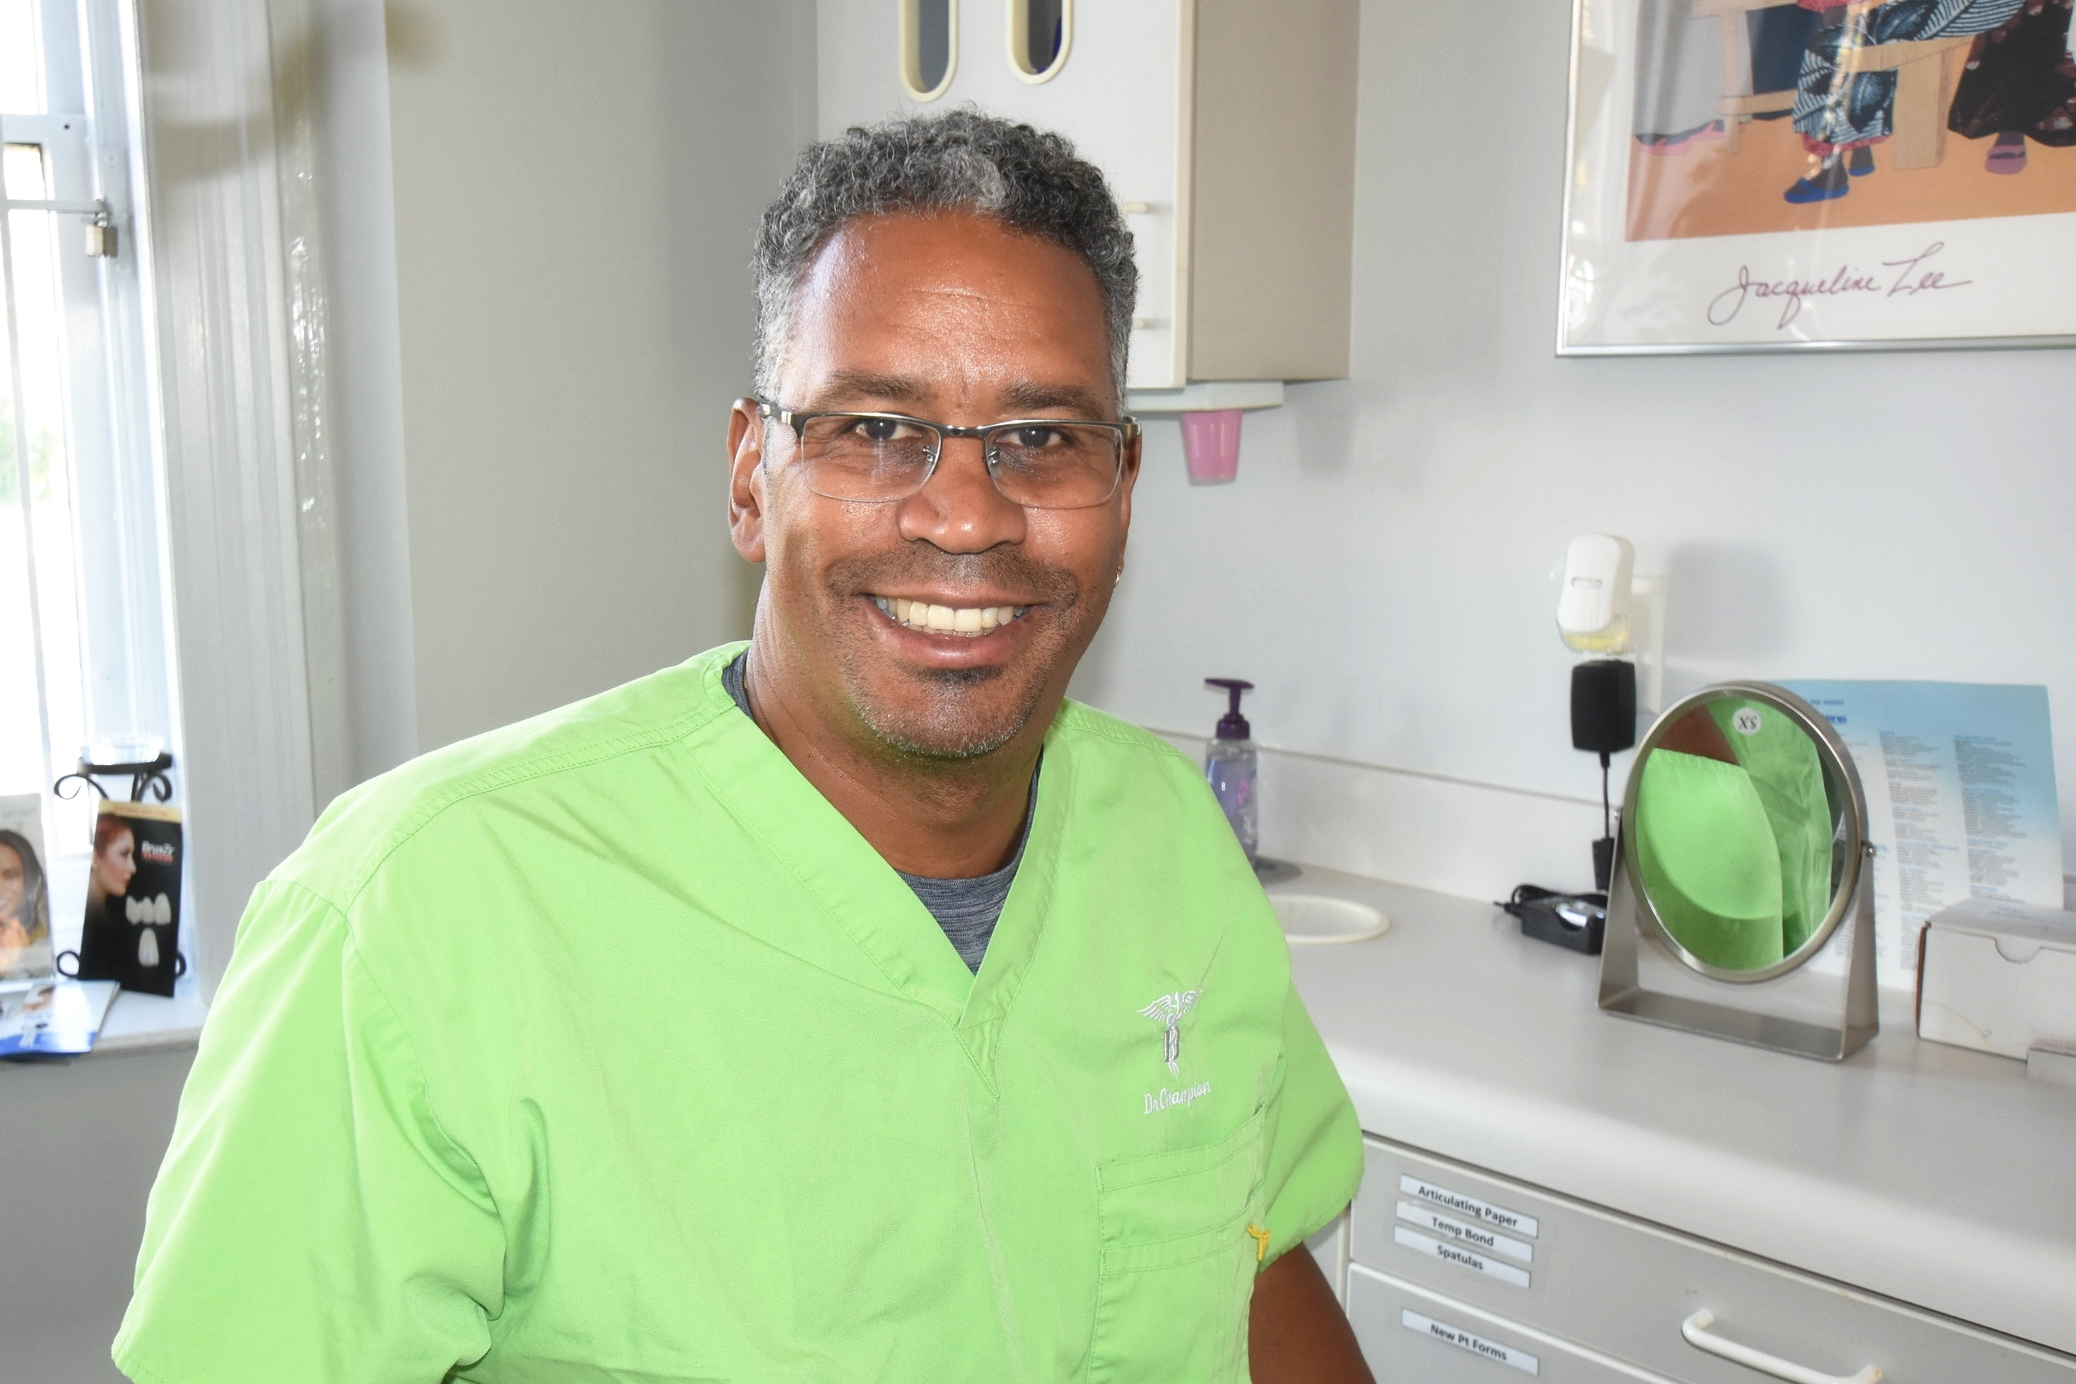 Charles W. Champion Jr. D.D.S. - Practicing dentistry for over 30 years